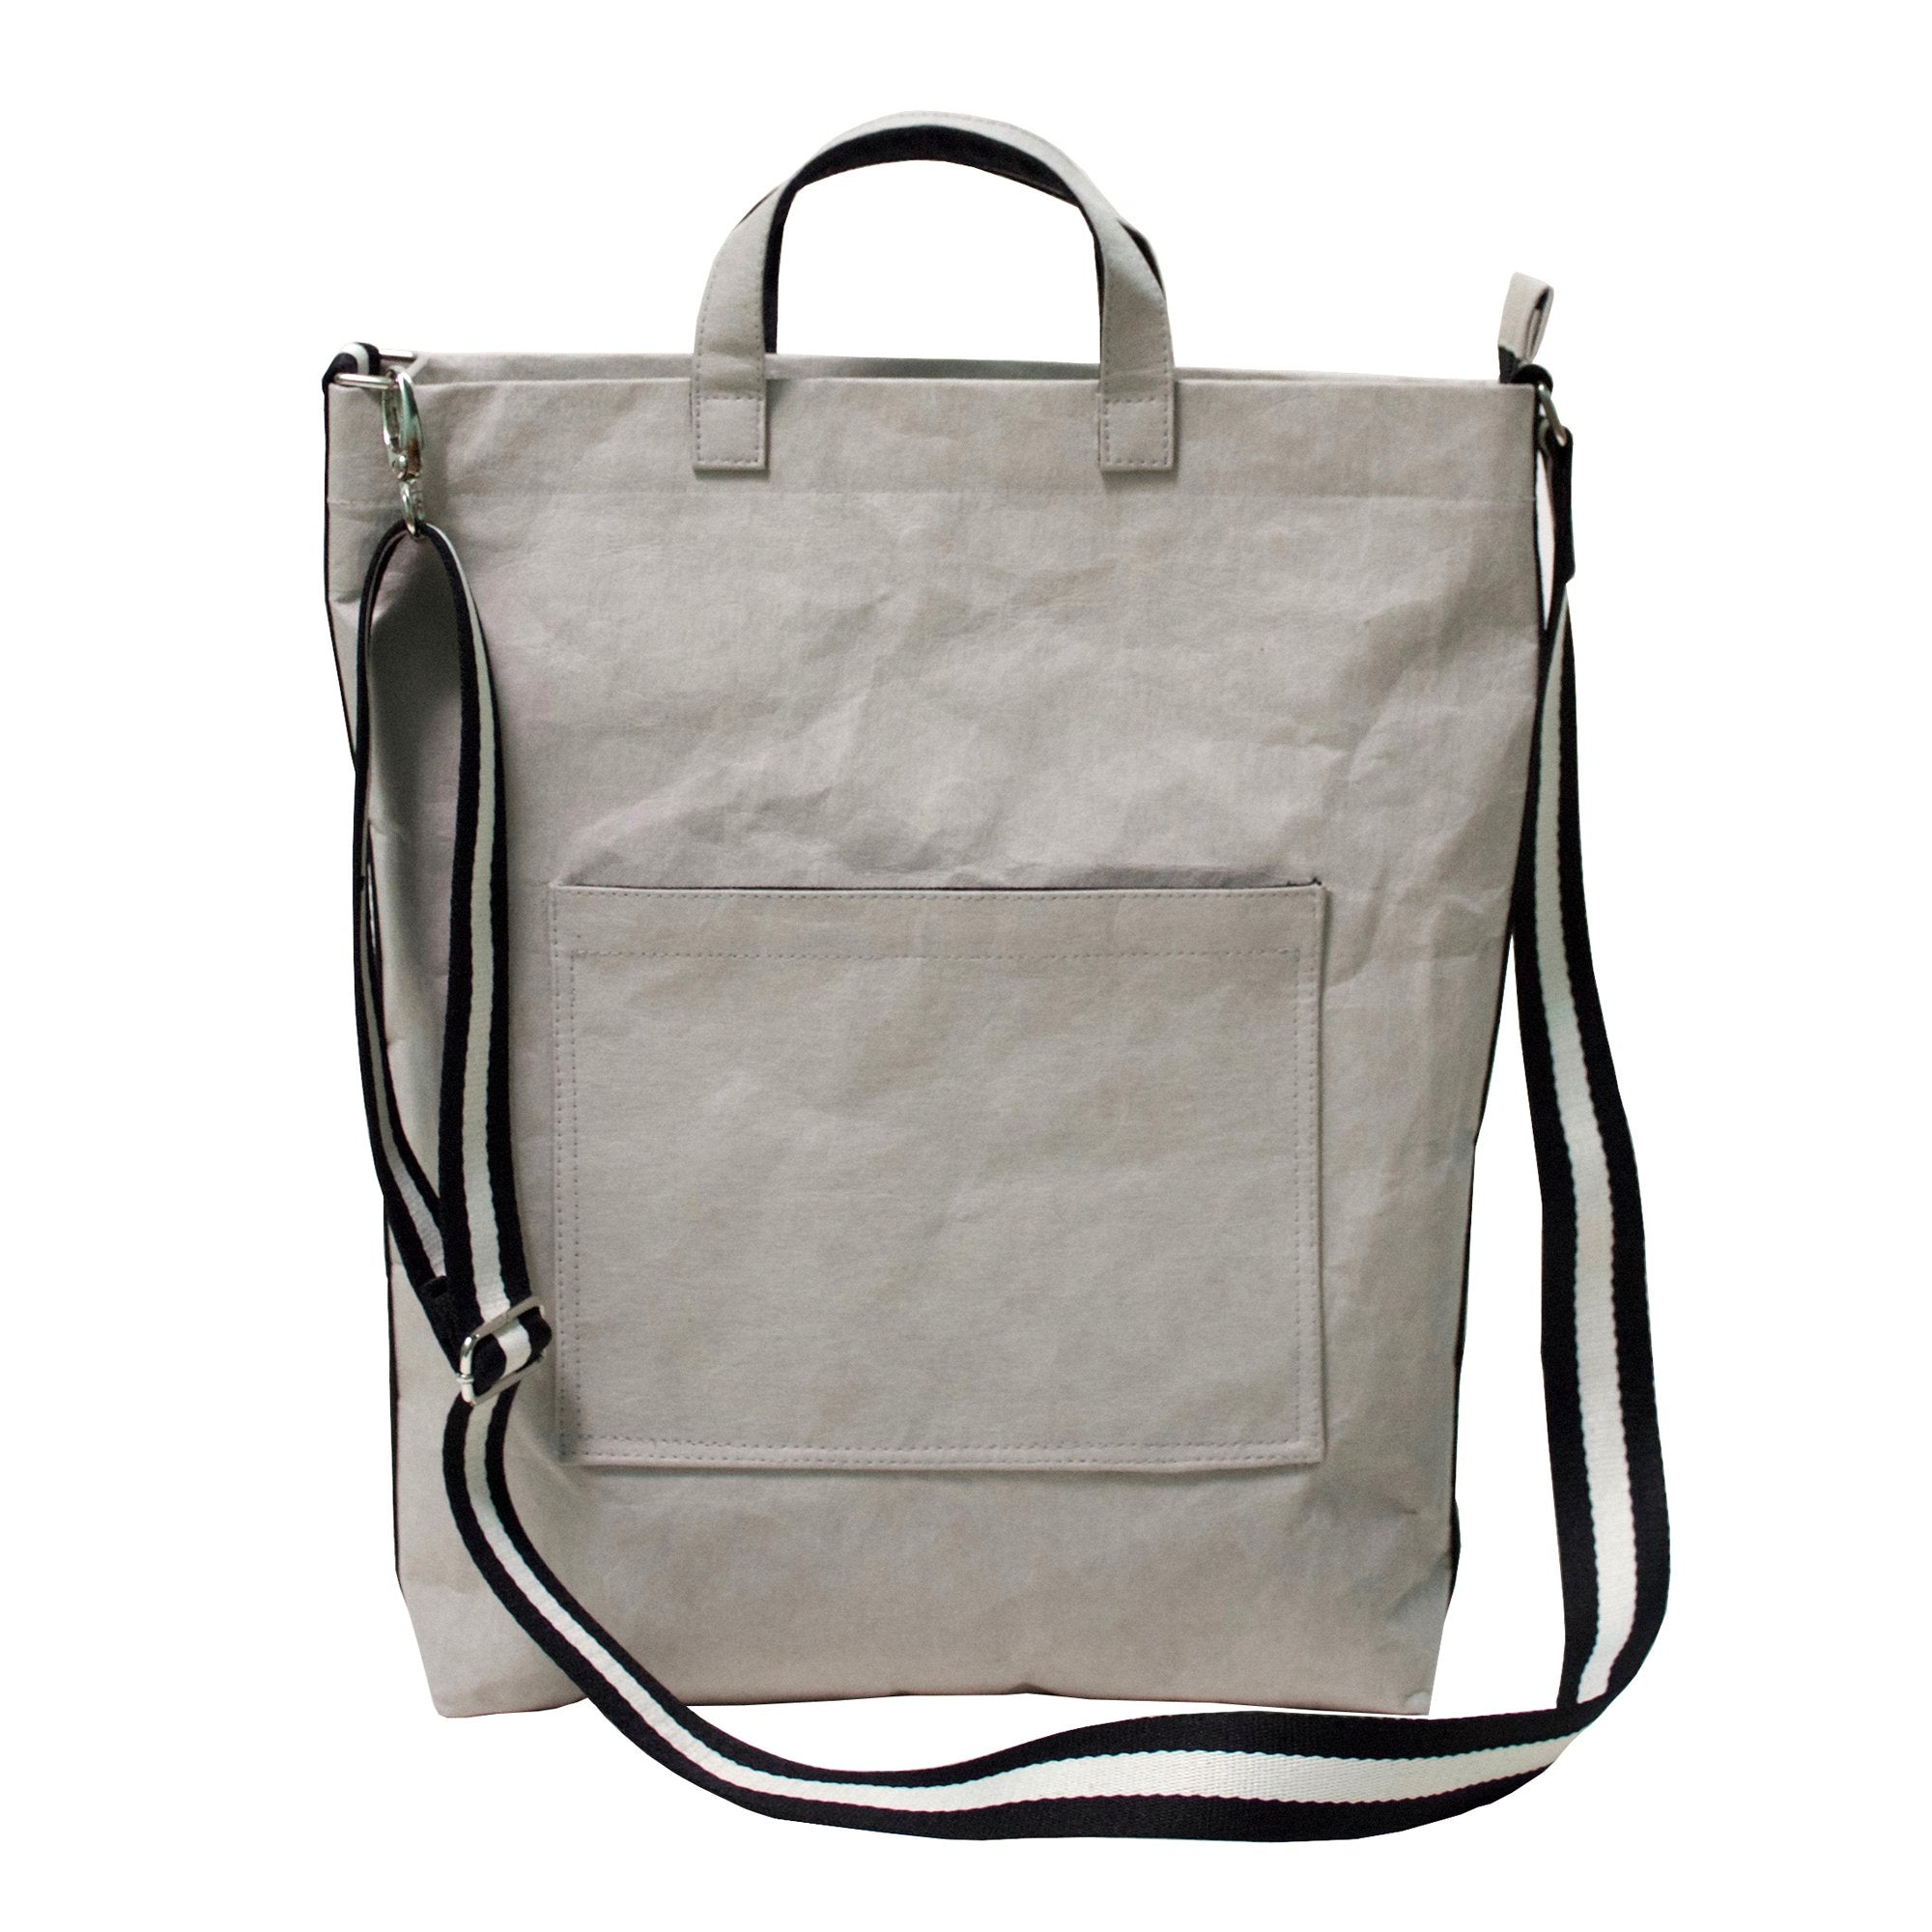 Demeter Grey Shoulder or Cross Body Bag made from Washable Paper-Kaban-Temples and Markets